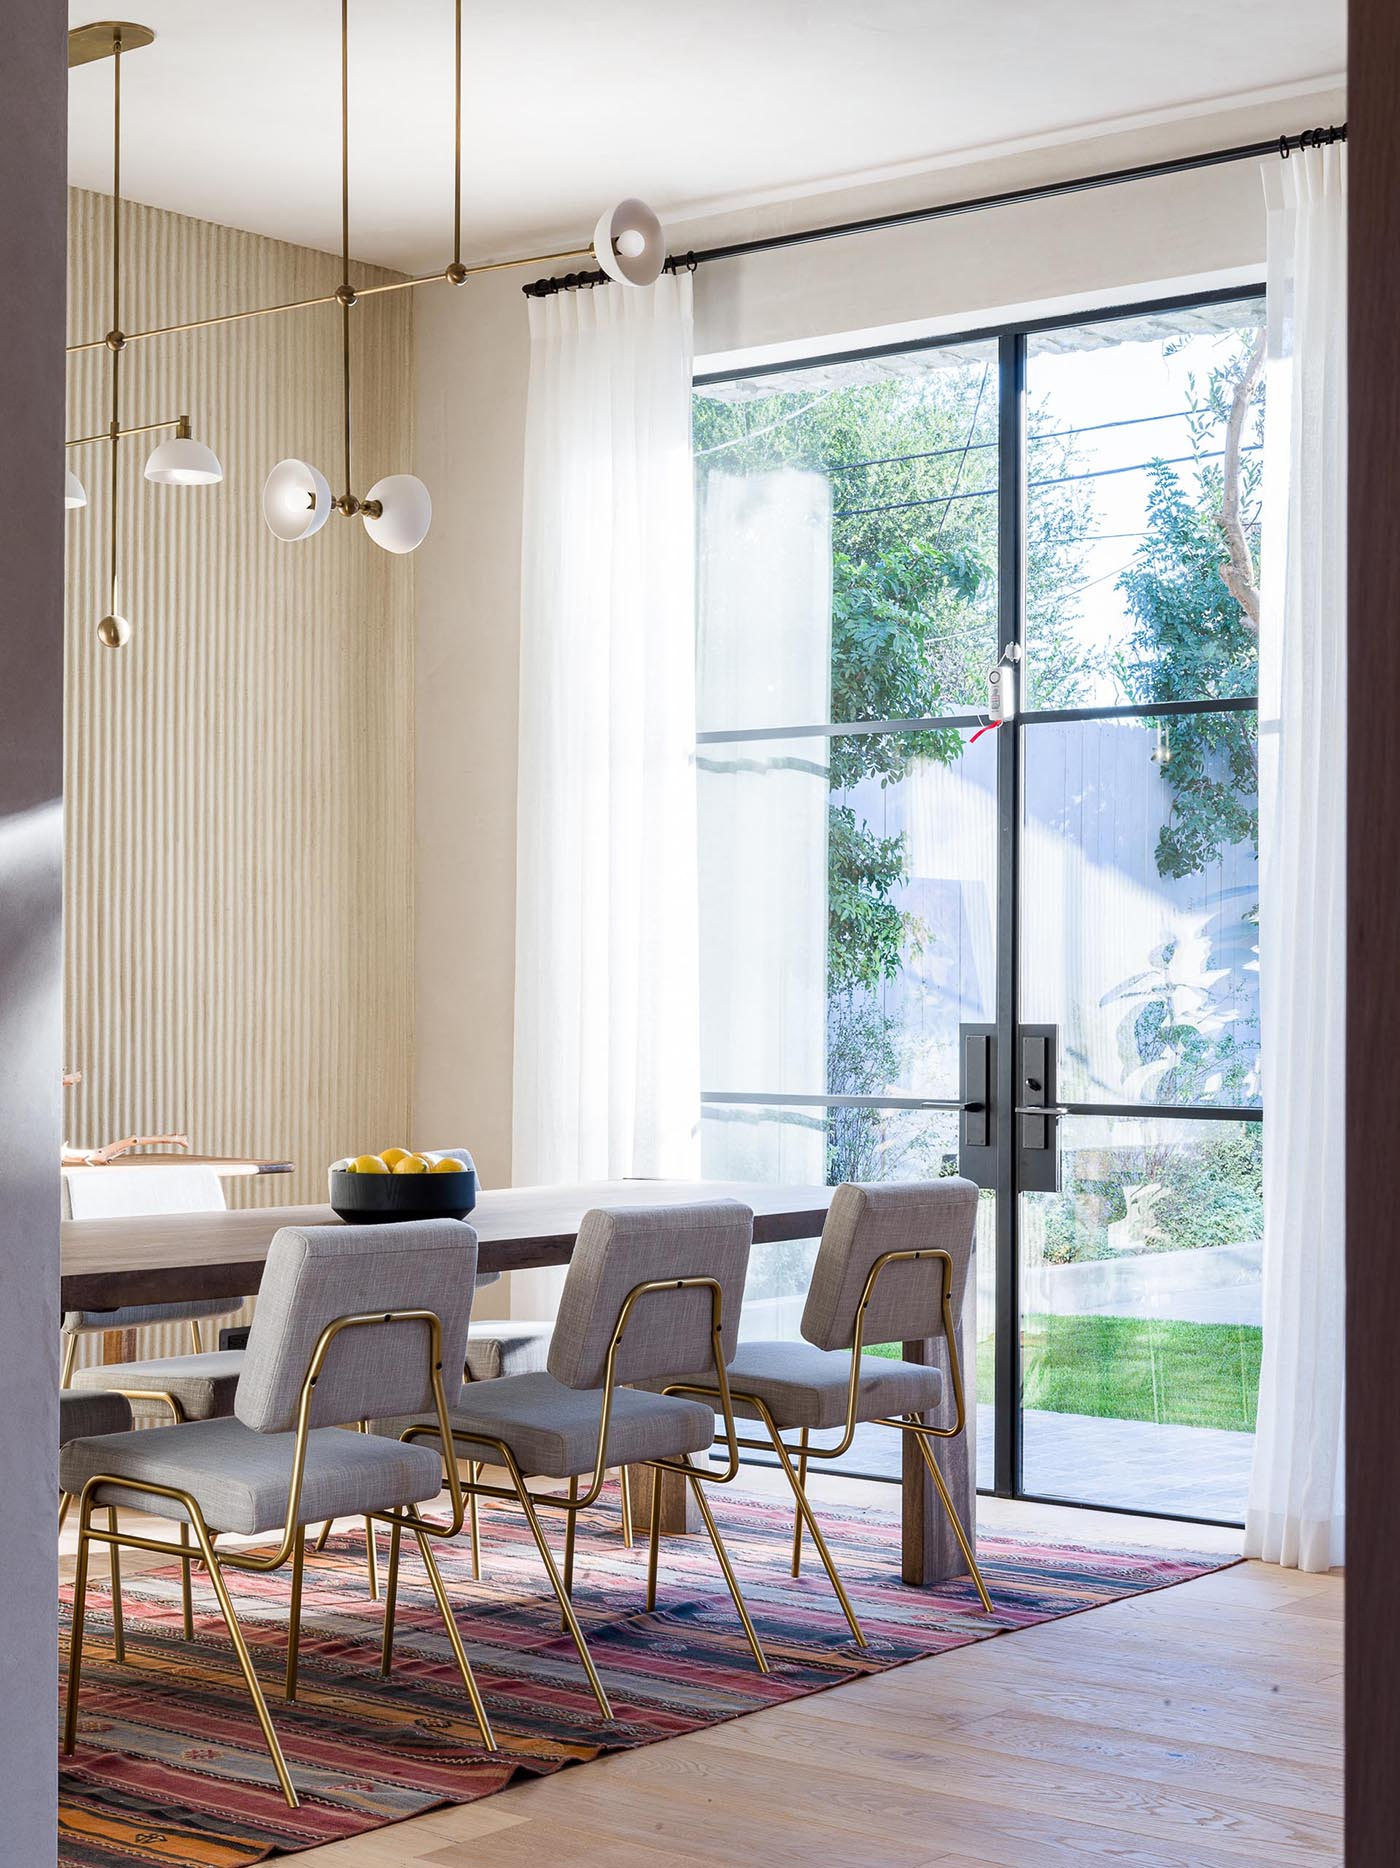 This modern formal dining area showcases a statement plaster wall, while black-framed glass doors open to the backyard.